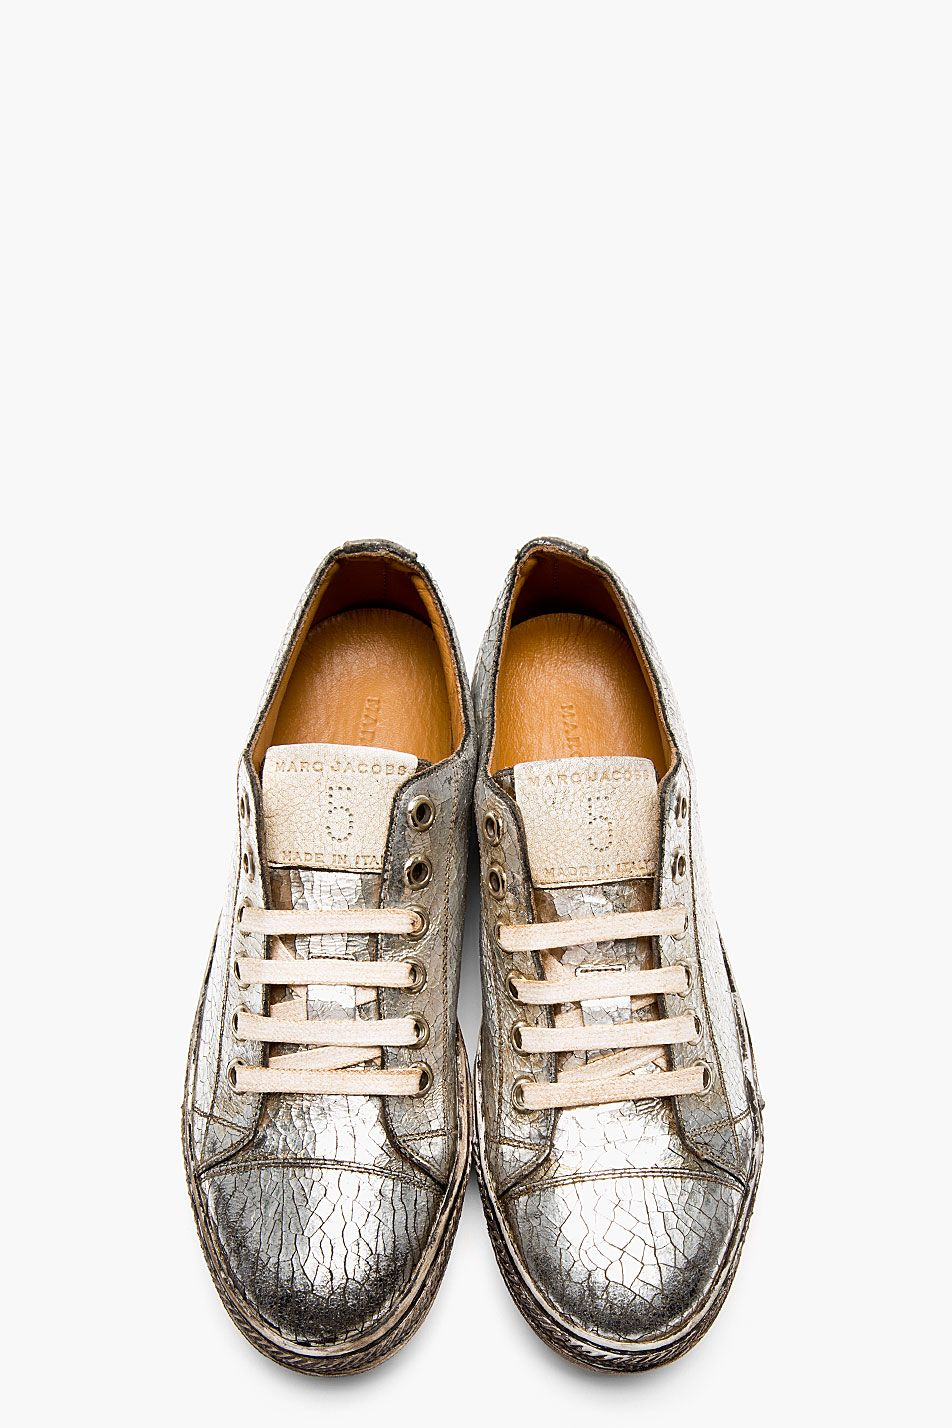 Dress shoes men, Sneakers, Leather sneakers